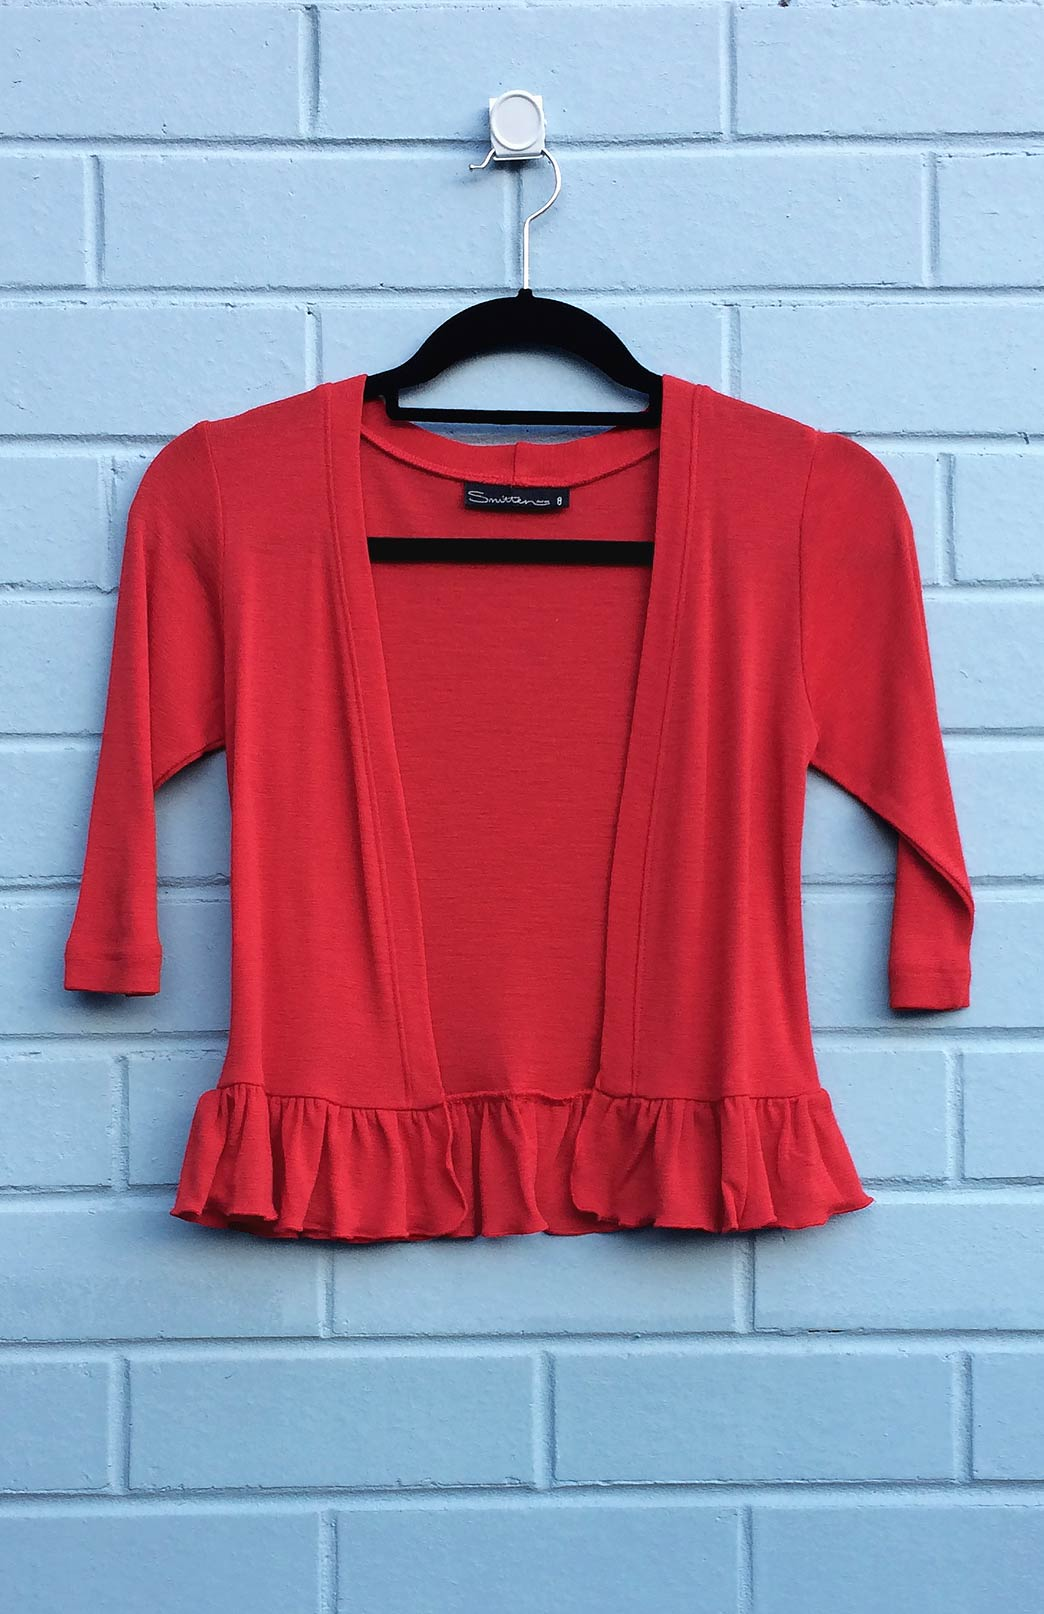 Crop Cardigan with Ruffled Hem - Women's Flame Red Ruffled Hem Crop Cardigan - Smitten Merino Tasmania Australia